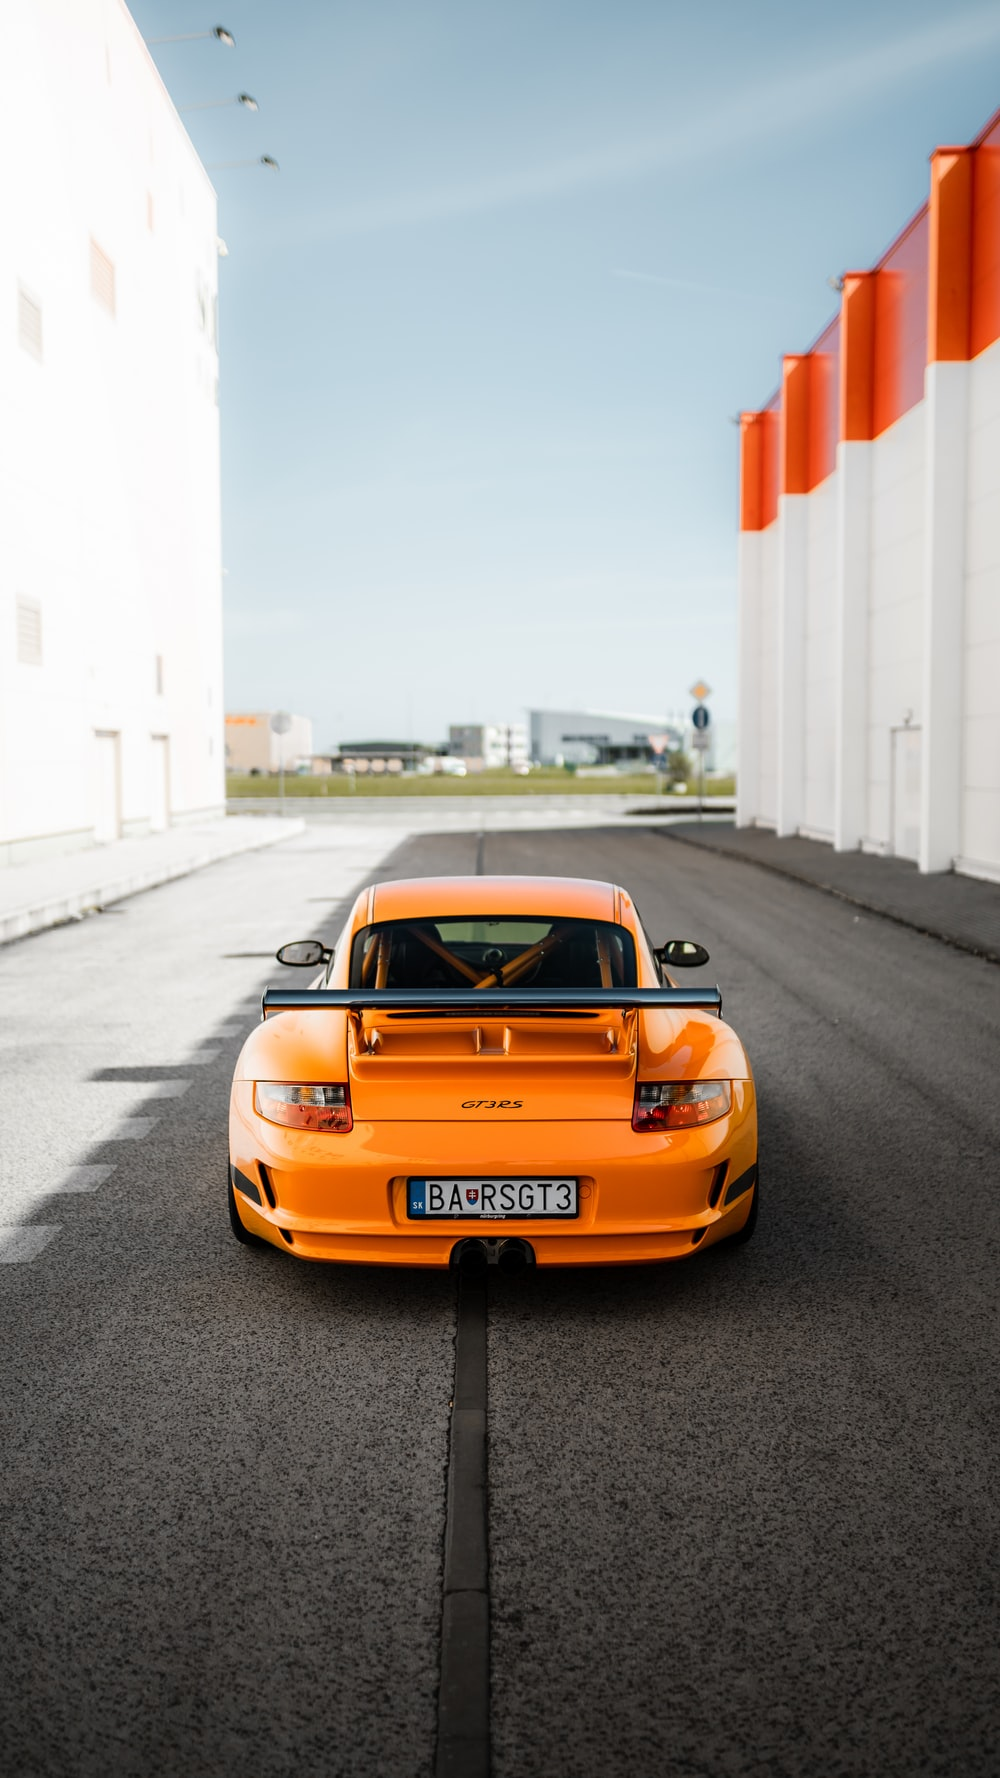 orange porsche 911 on road during daytime